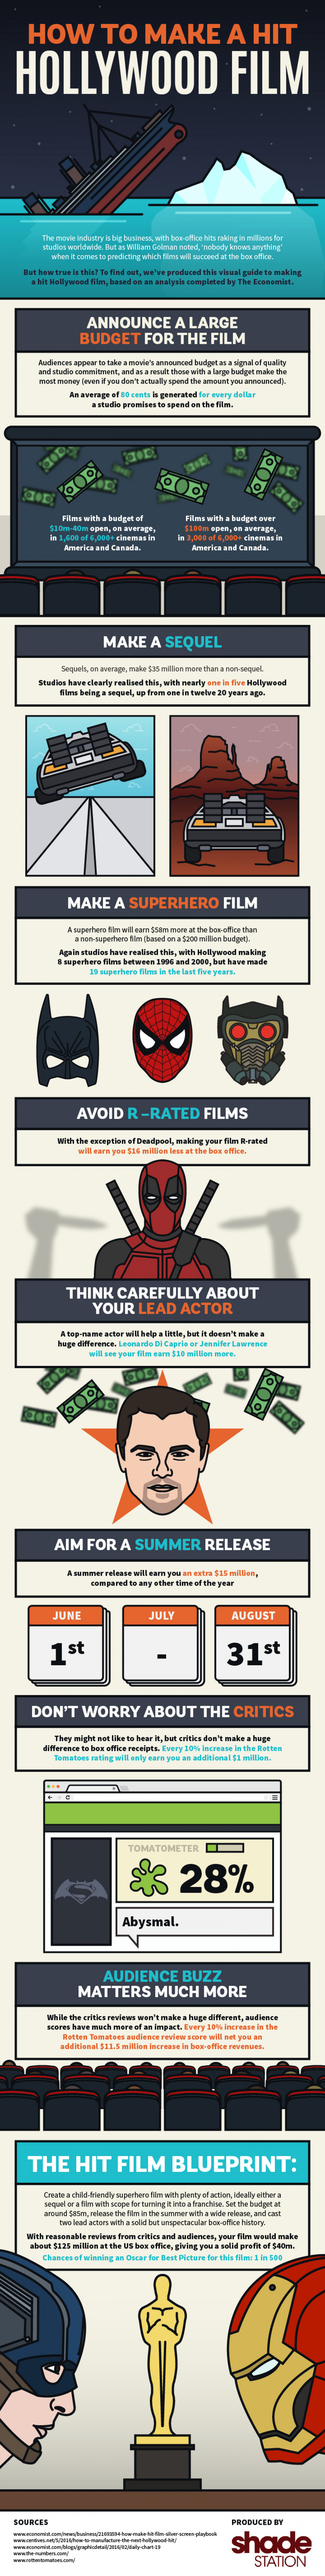 How to Make a Hit Hollywood Film Infographic